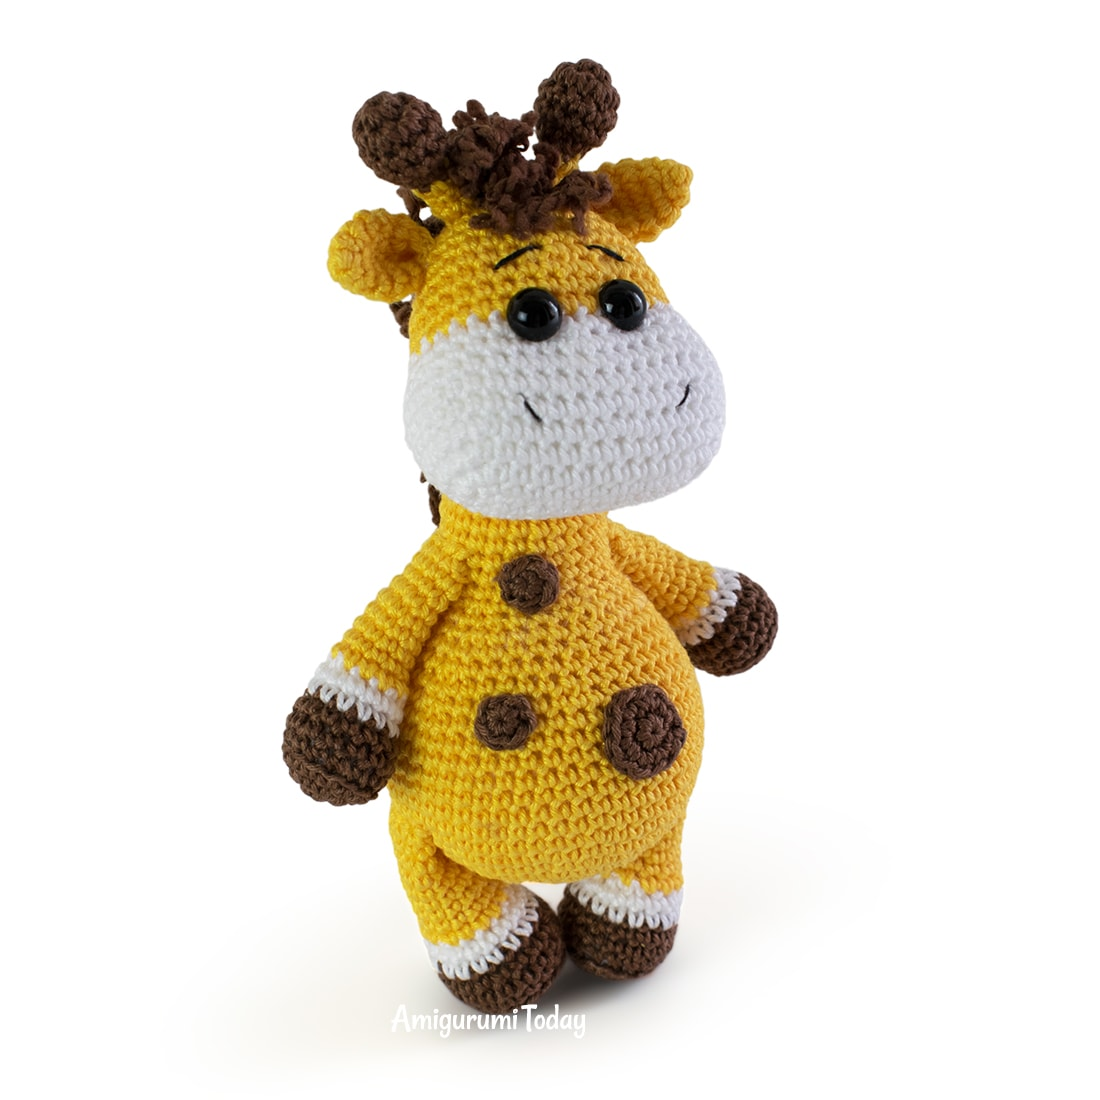 Free baby giraffe crochet pattern by Amigurumi Today